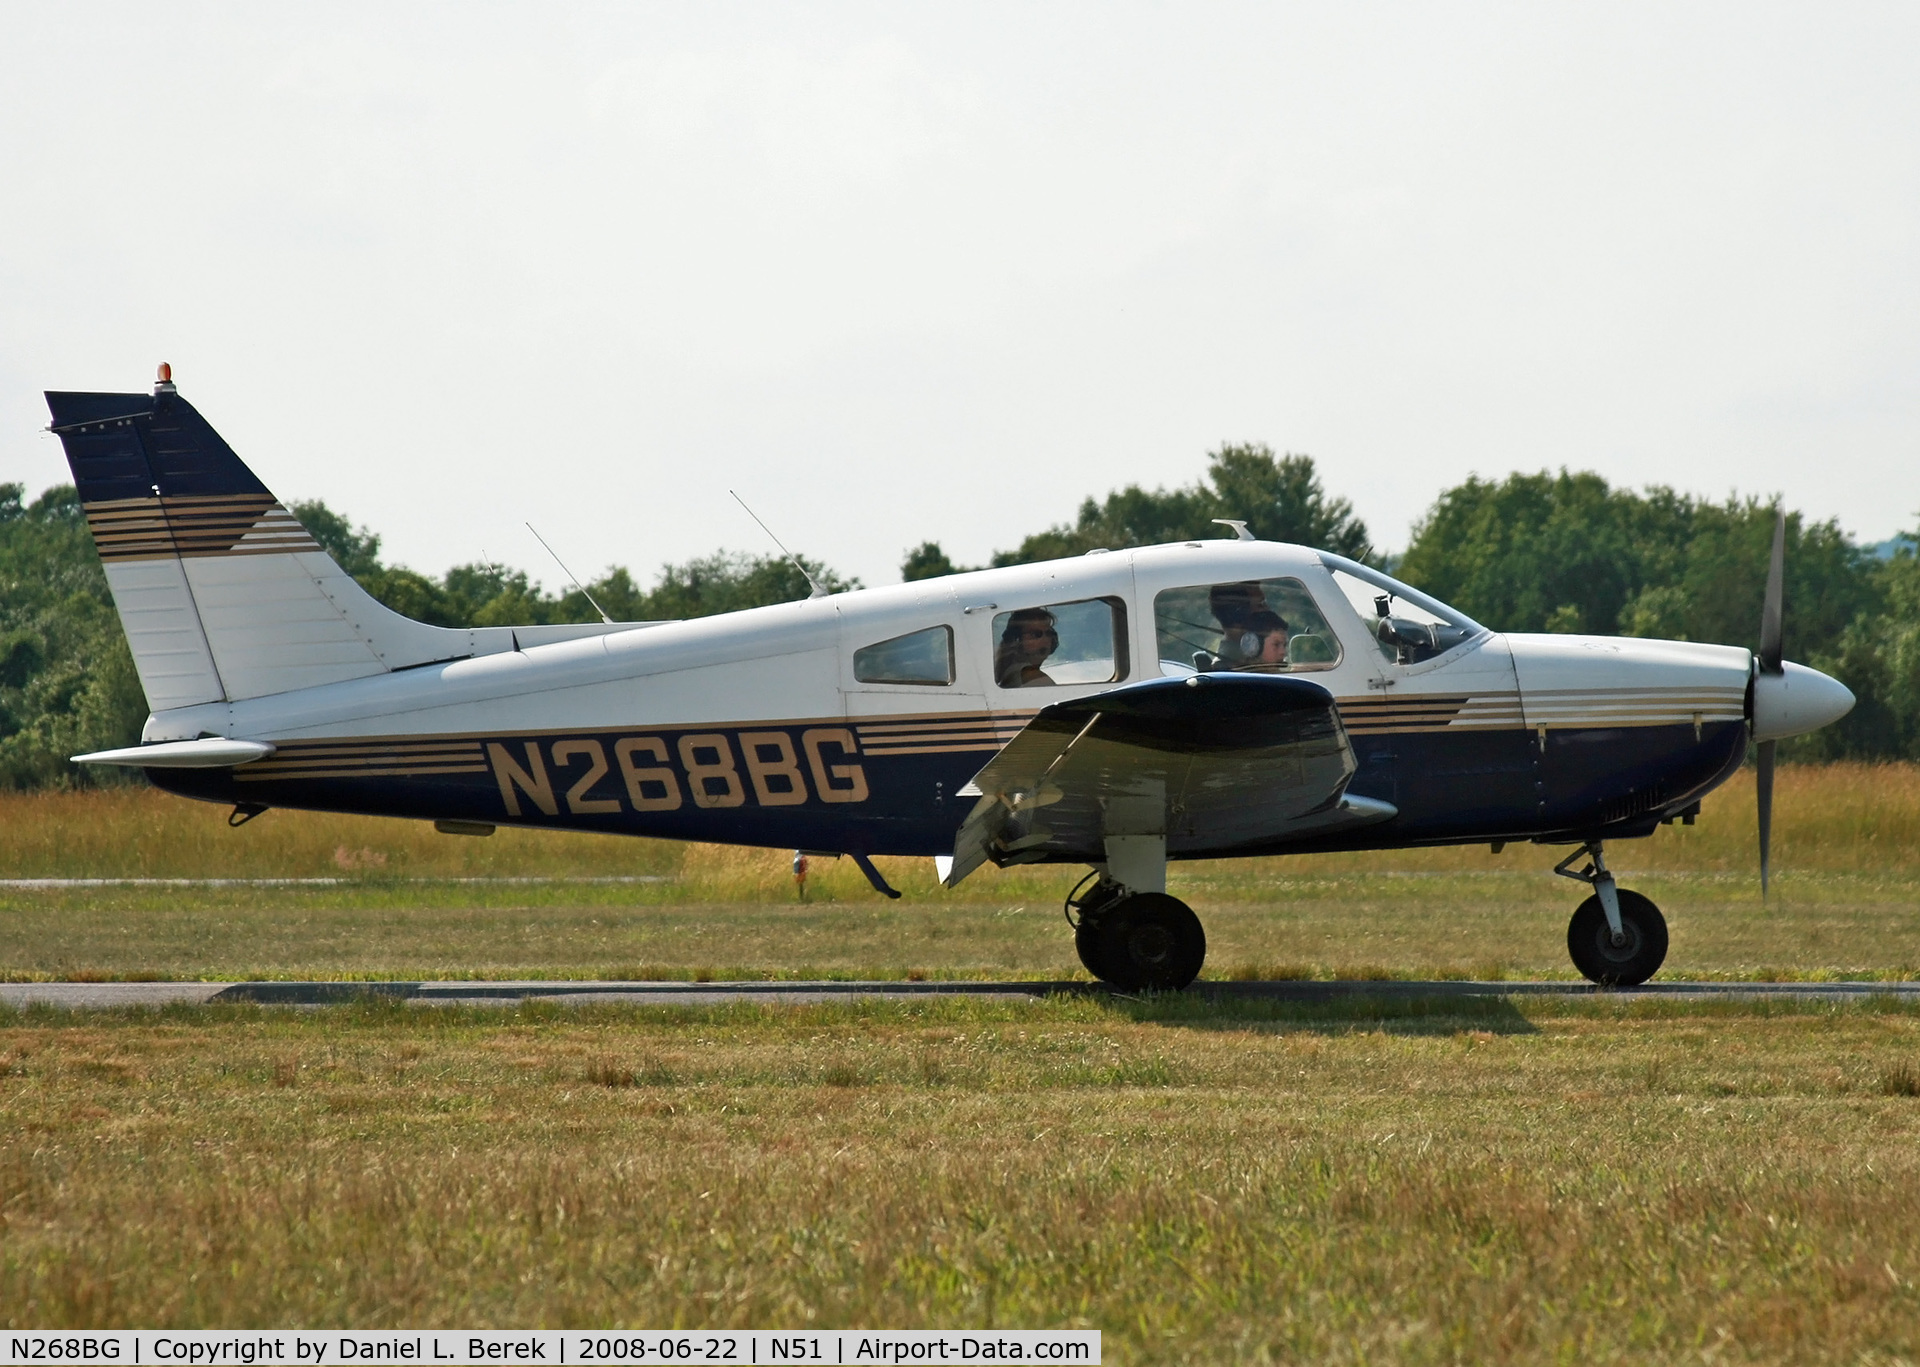 N268BG, 1976 Piper PA-28-181 C/N 28-7690268, Nice-looking Piper departing an airshow at Solberg Airport.